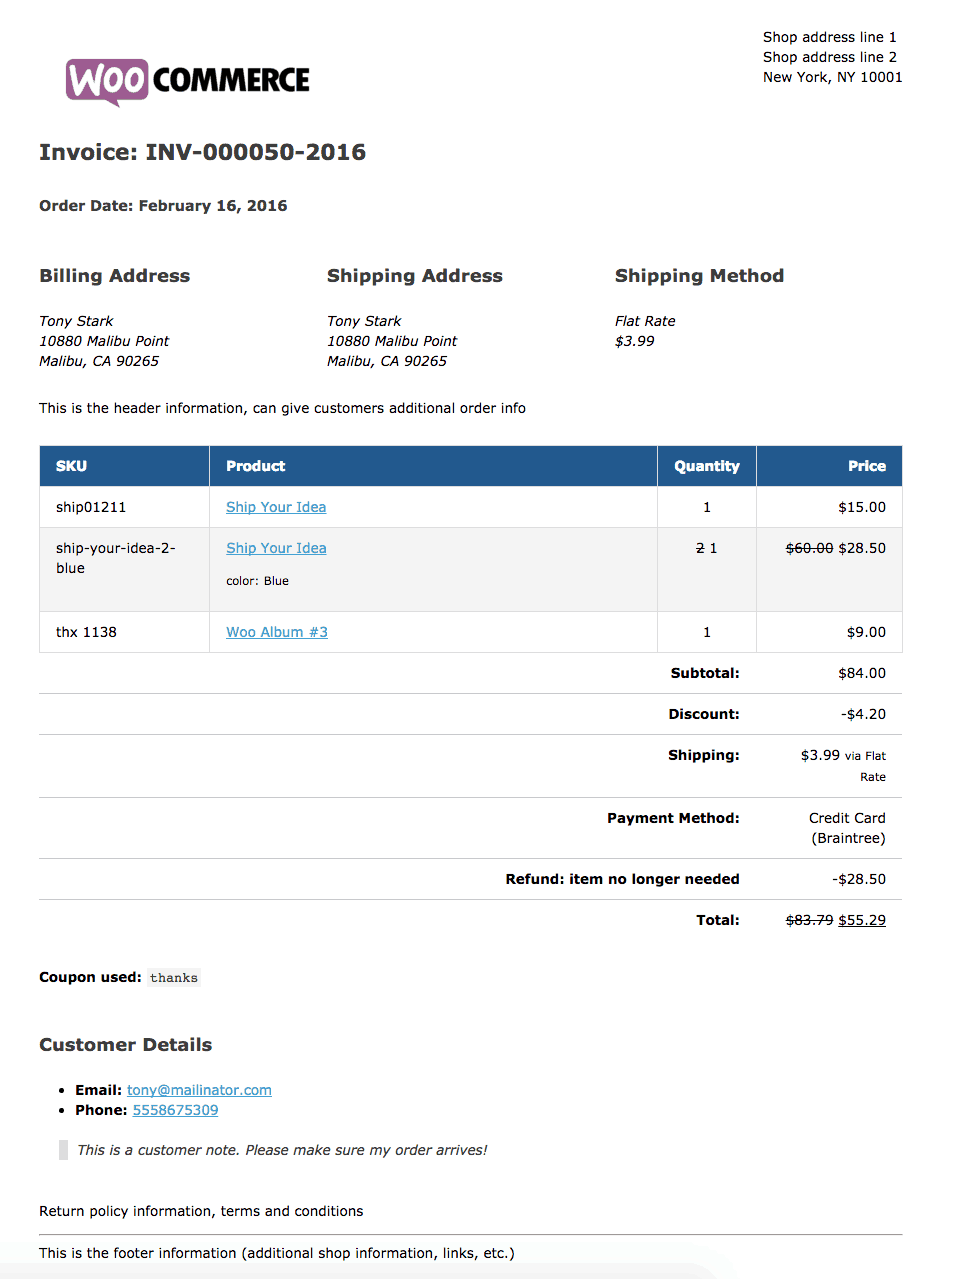 WooCommerce Print Invoices & Packing Lists plugin pdf invoice